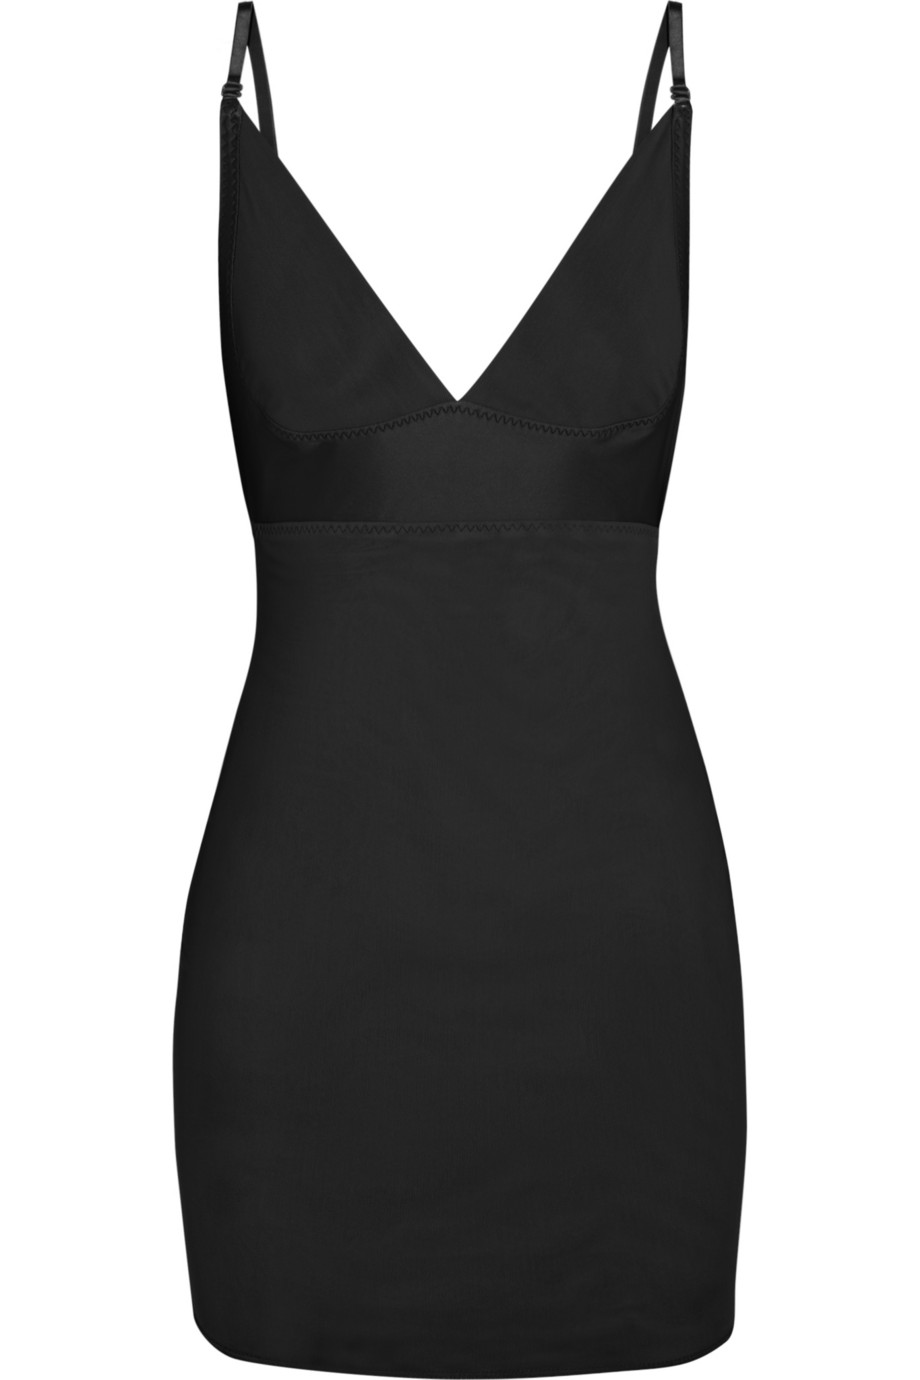 underwear solutions for new years eve dresses what to wear red online